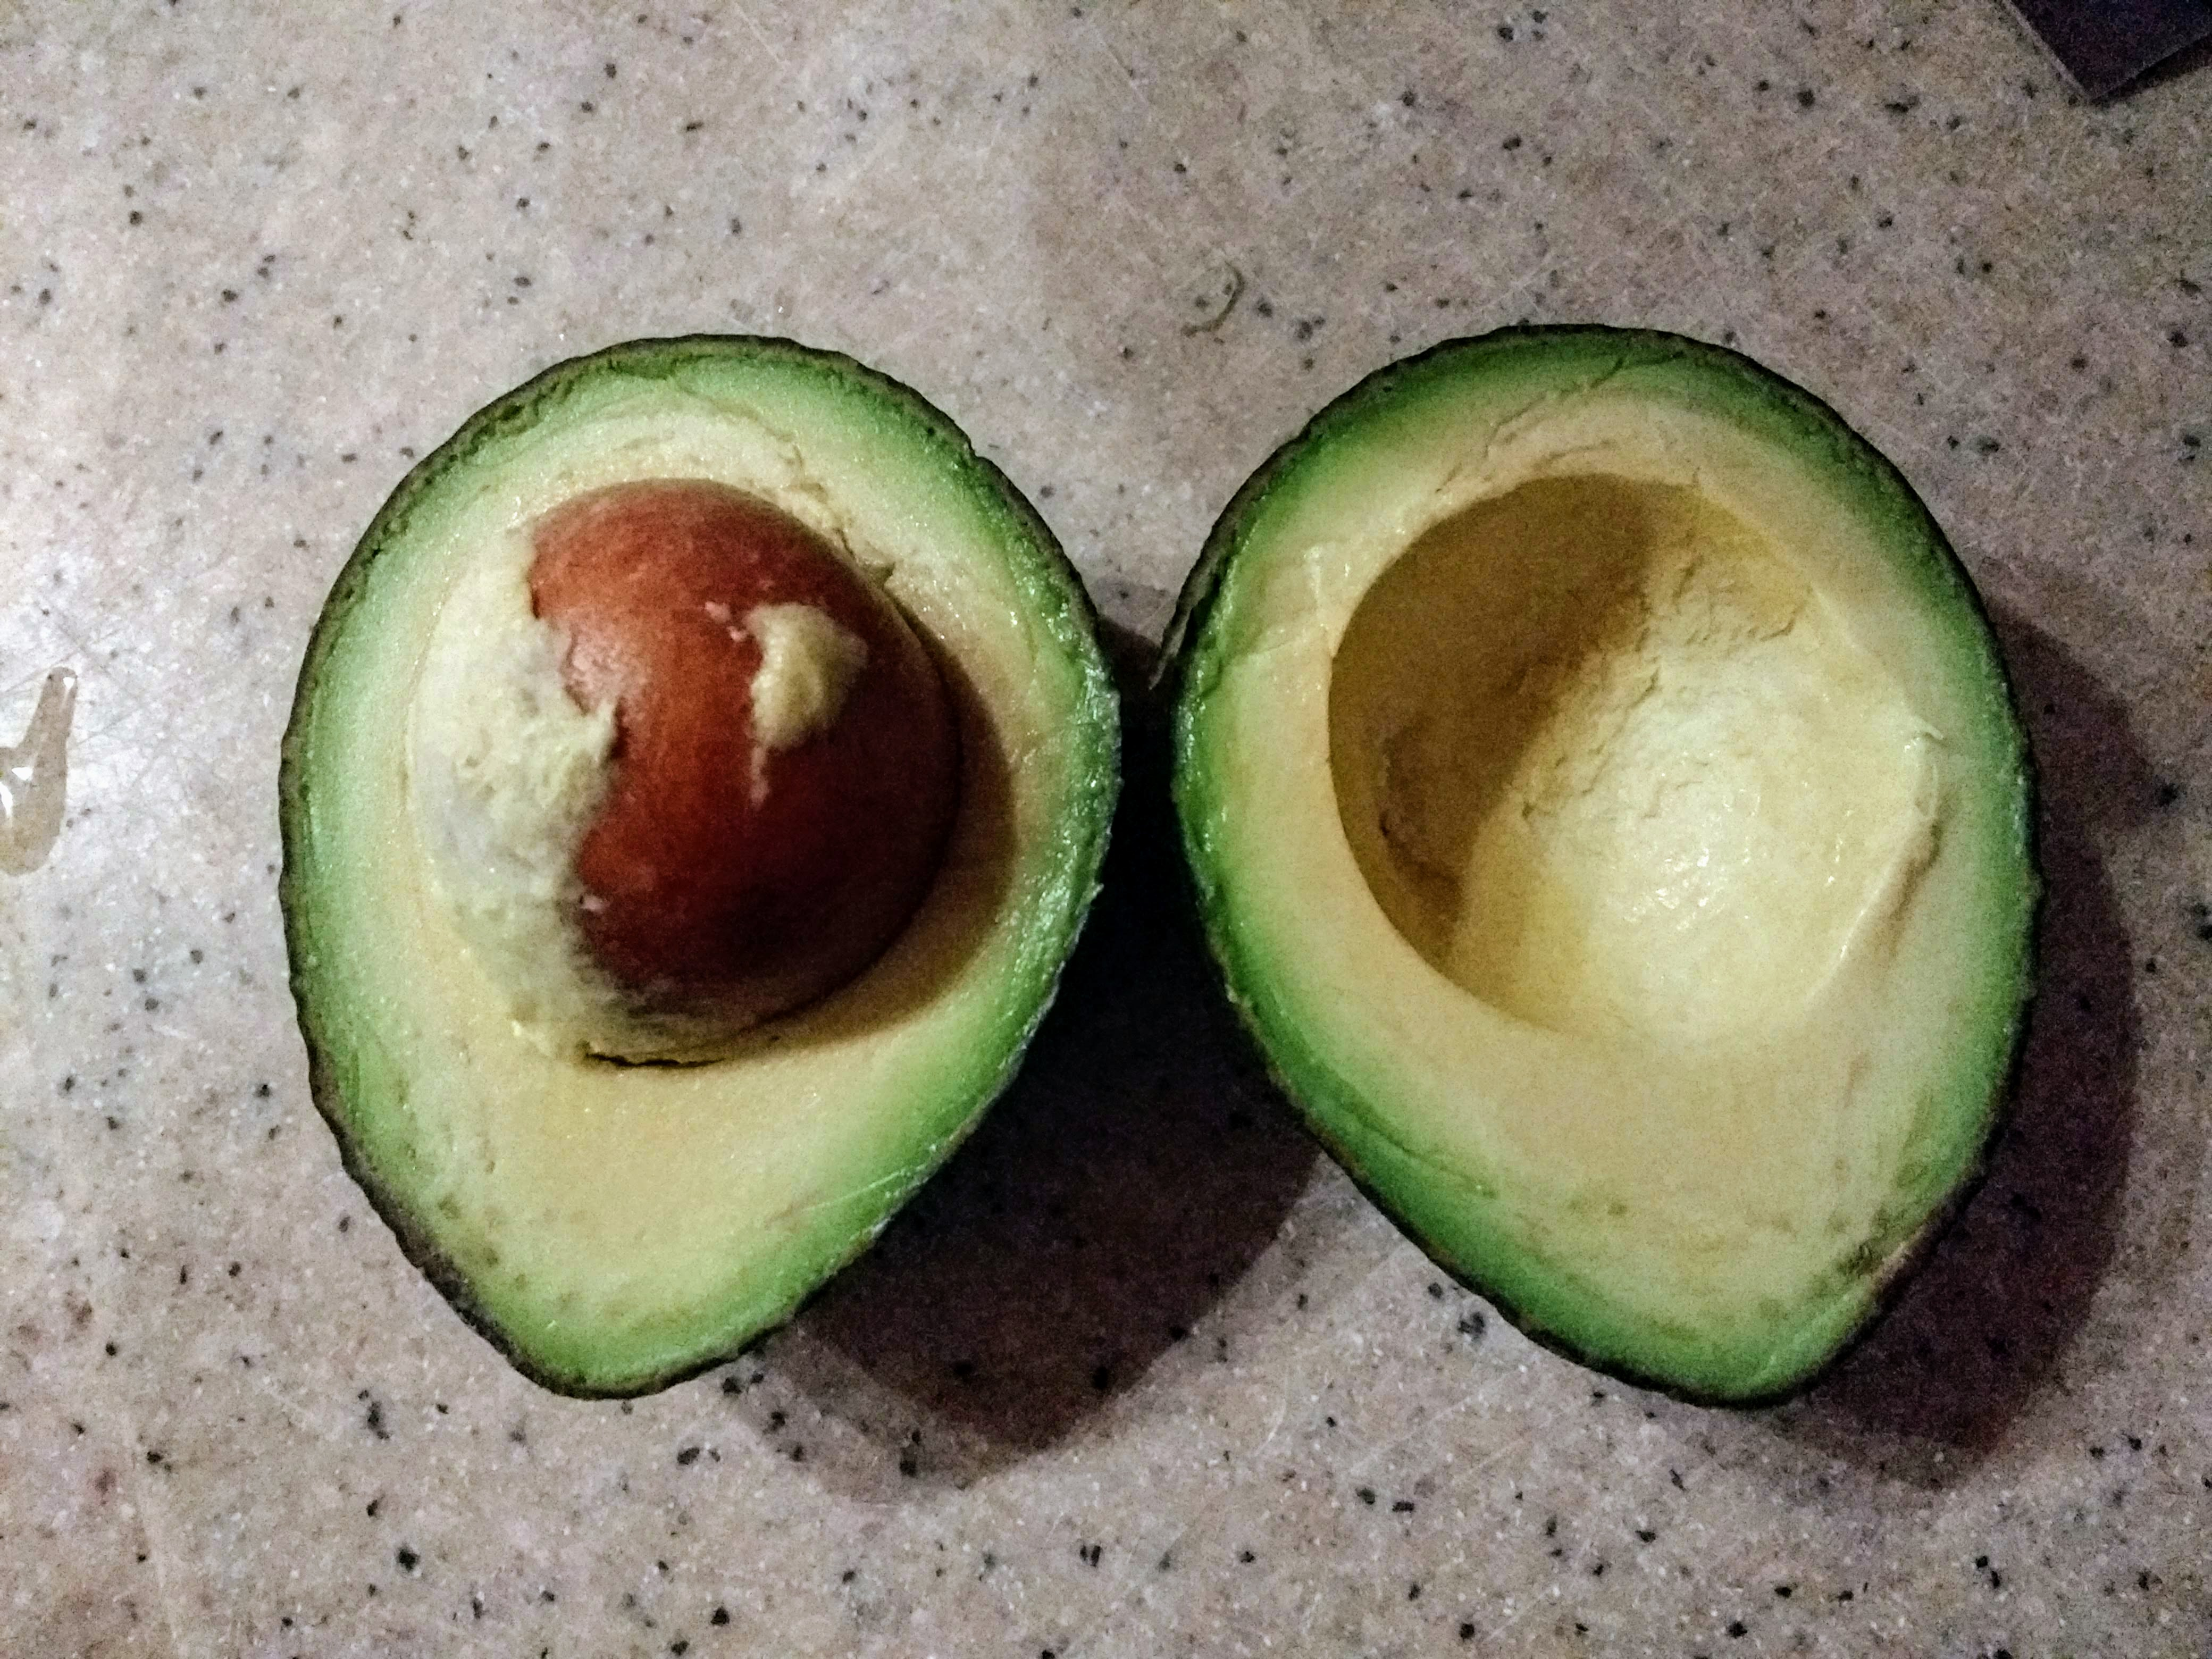 Avocados are packed with great nutrition!